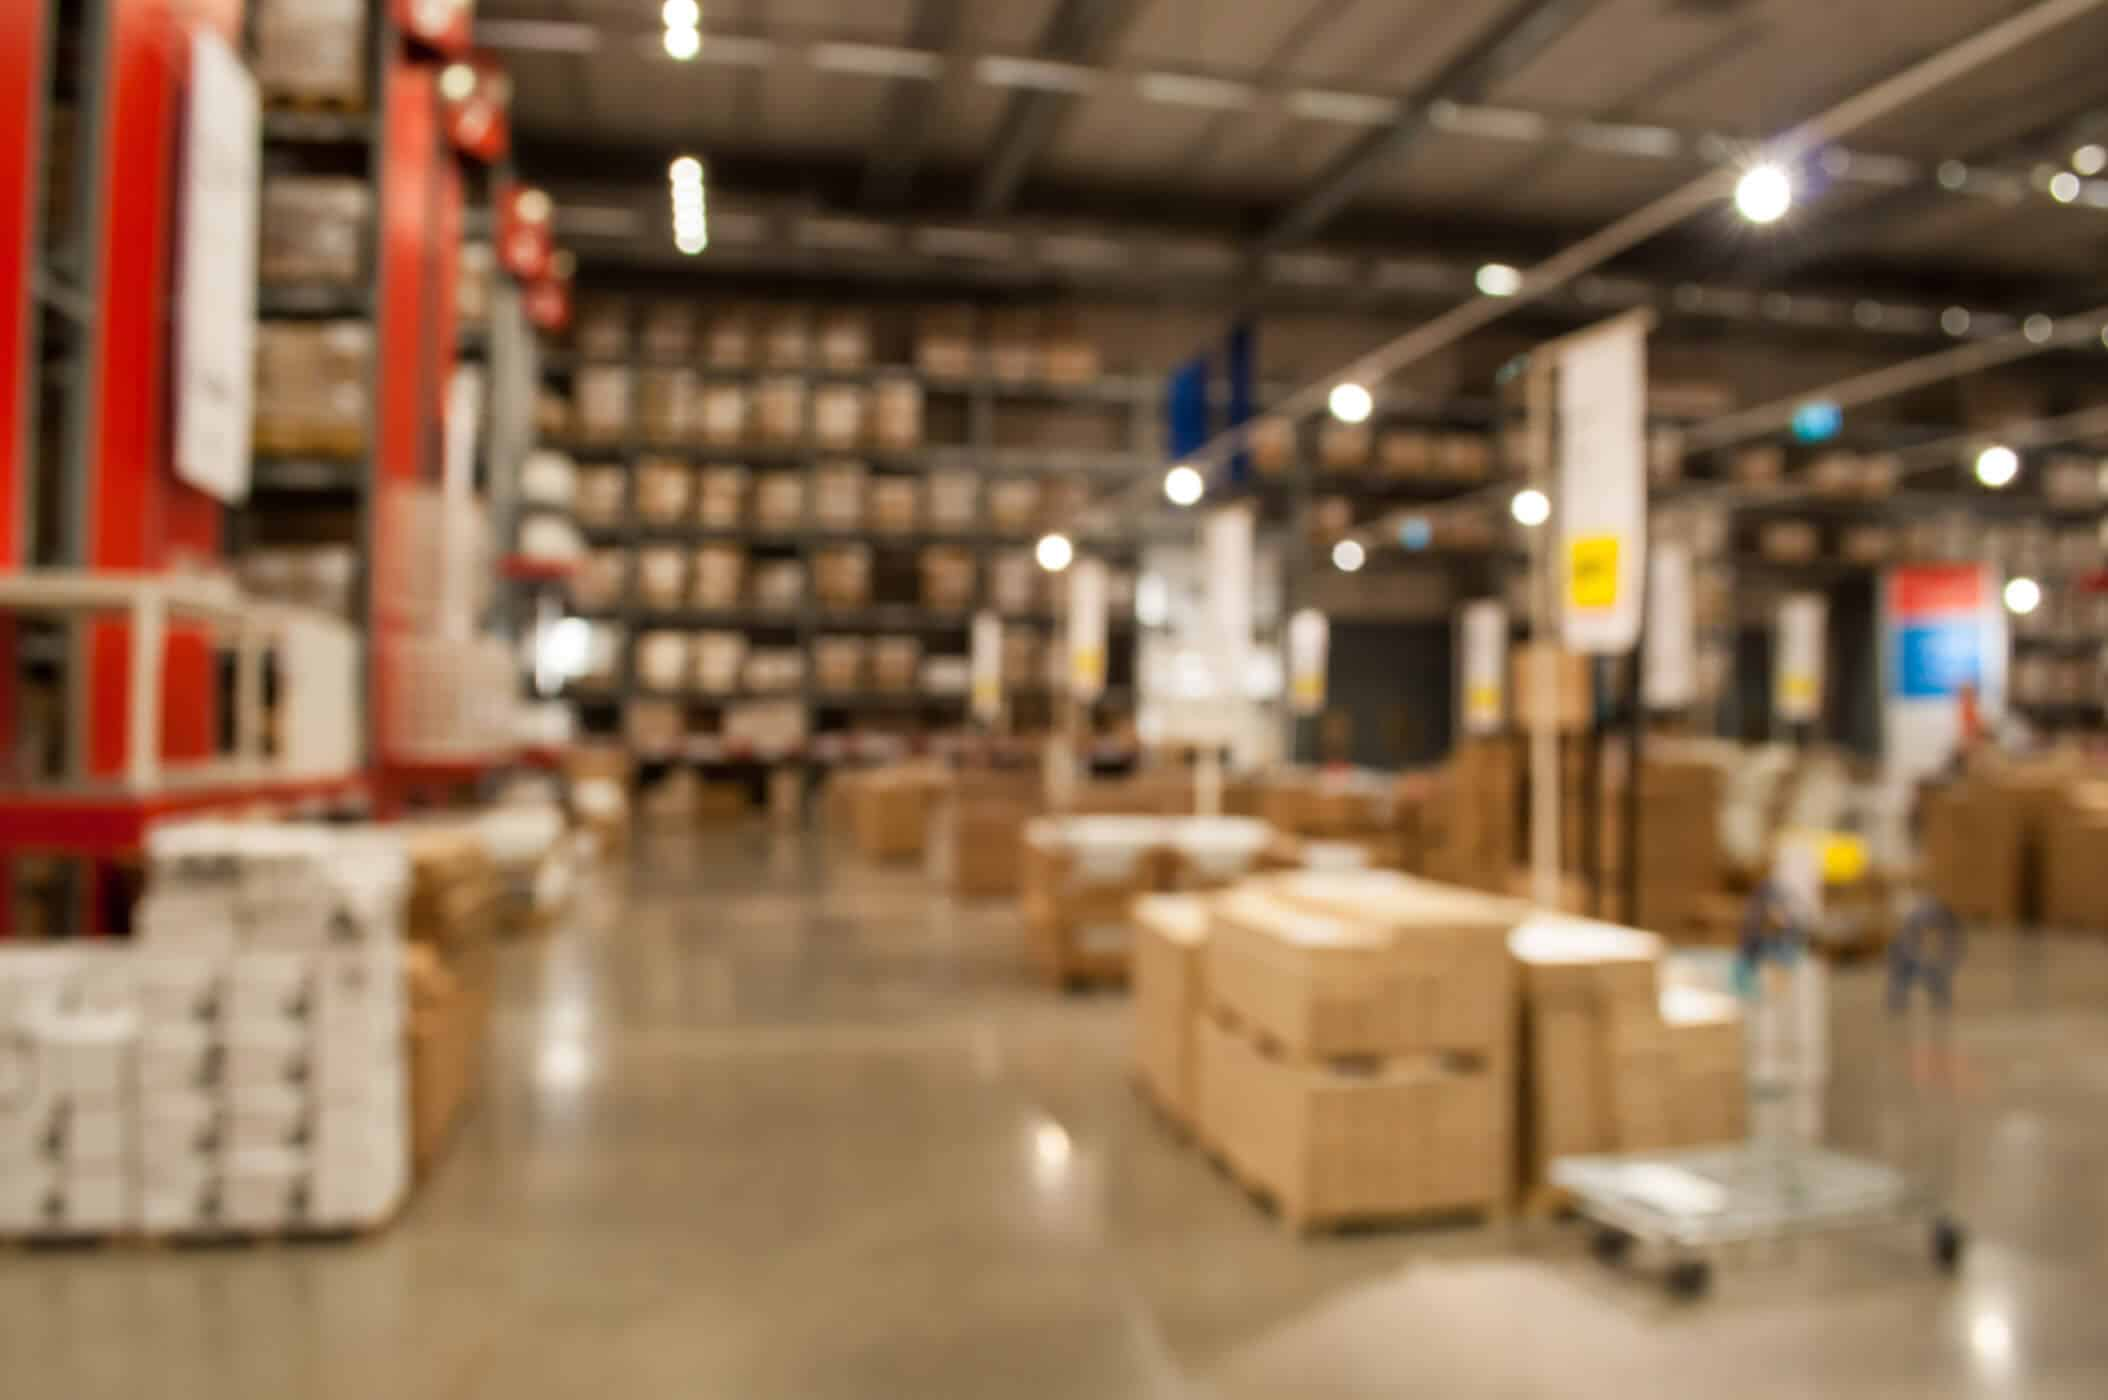 A Workplace warehouse